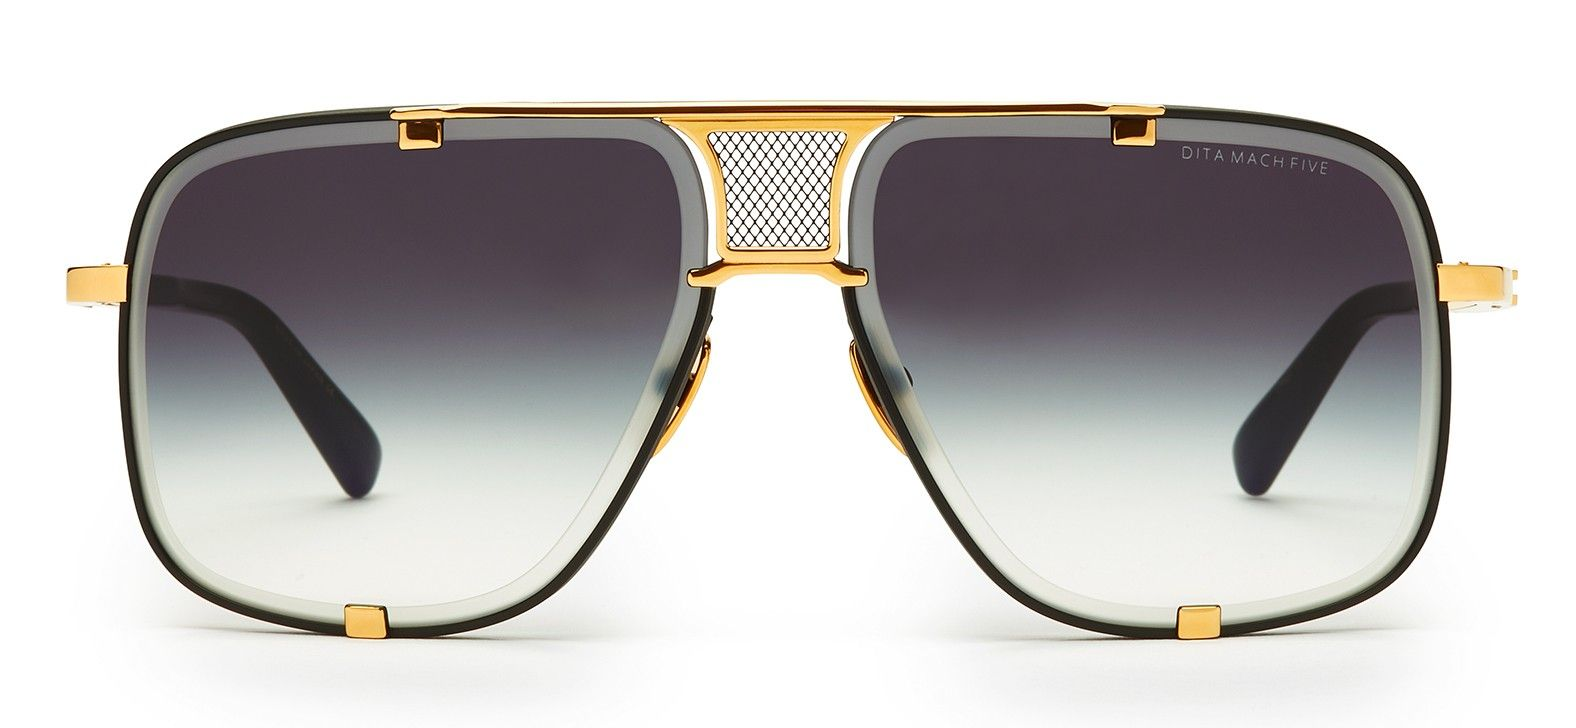 e60e2884ed The MACH-FIVE Aviator Sunglasses by DITA Eyewear.